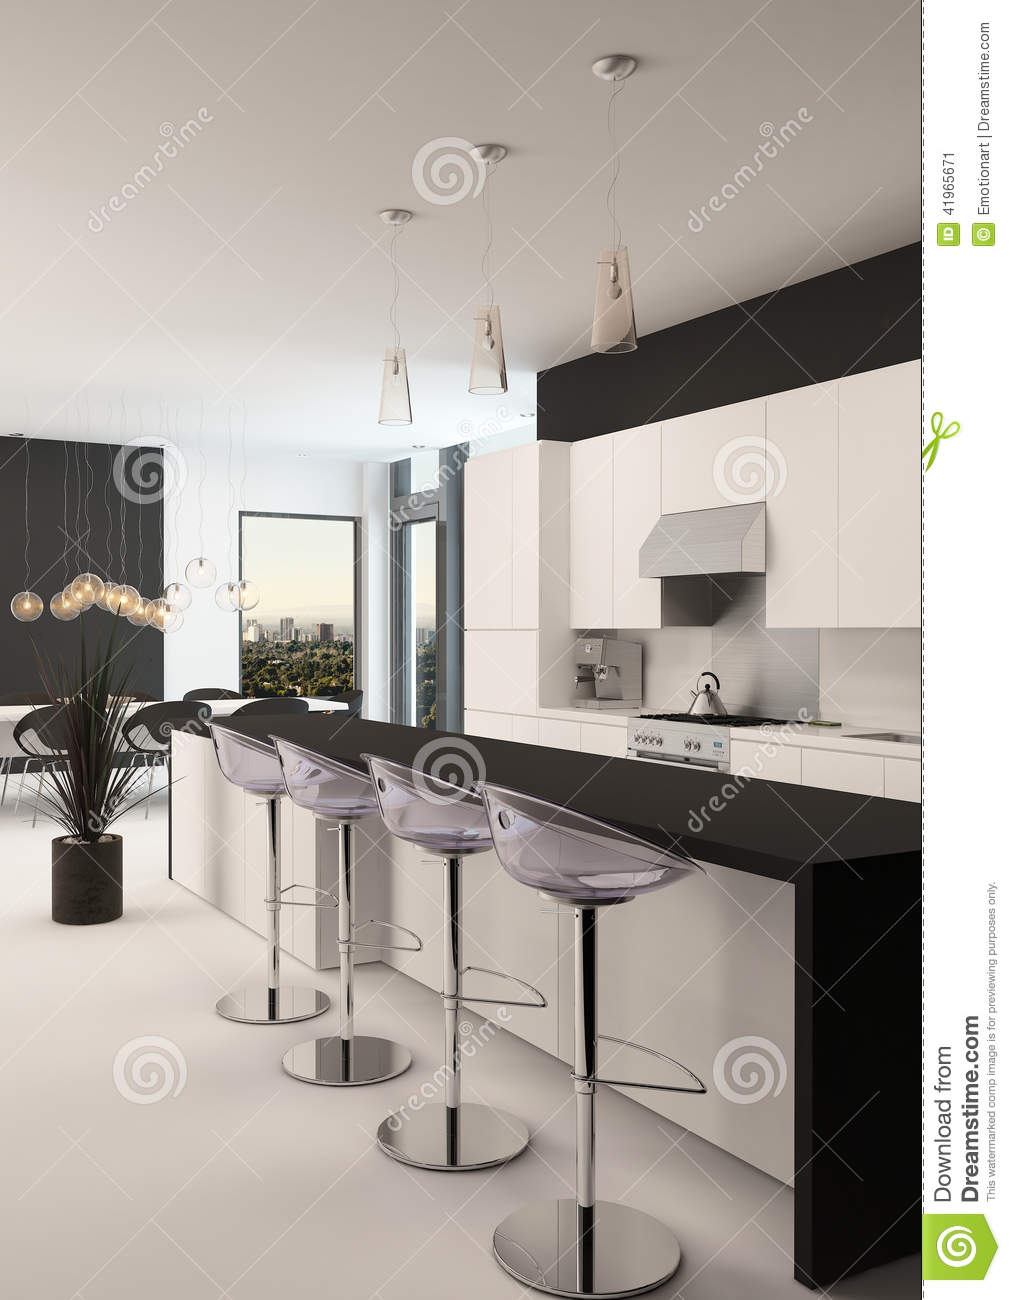 cuisine noire. Black Bedroom Furniture Sets. Home Design Ideas